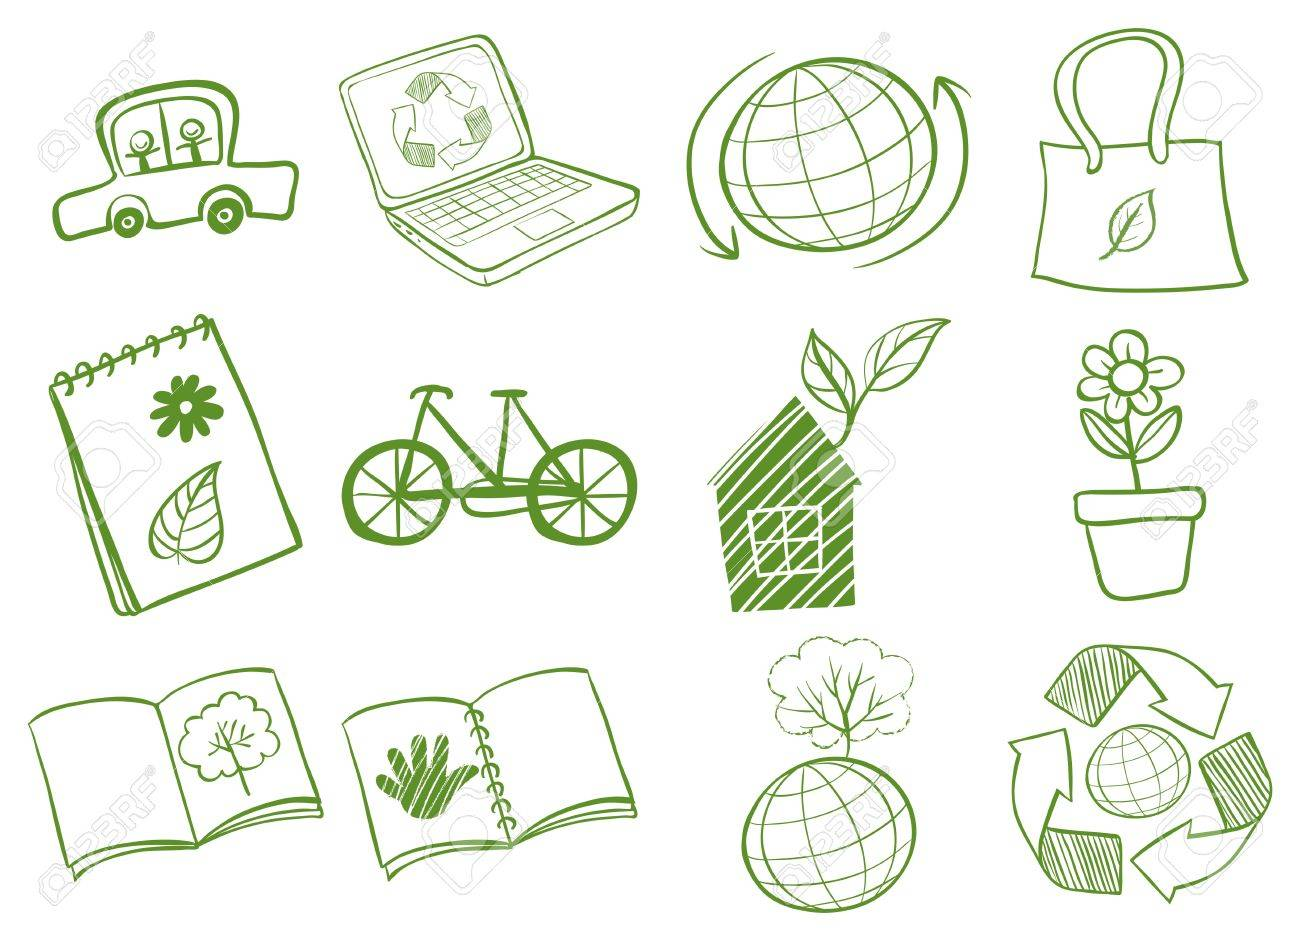 Illustration of the eco-friendly logo designs on a white background Stock Vector - 18983392